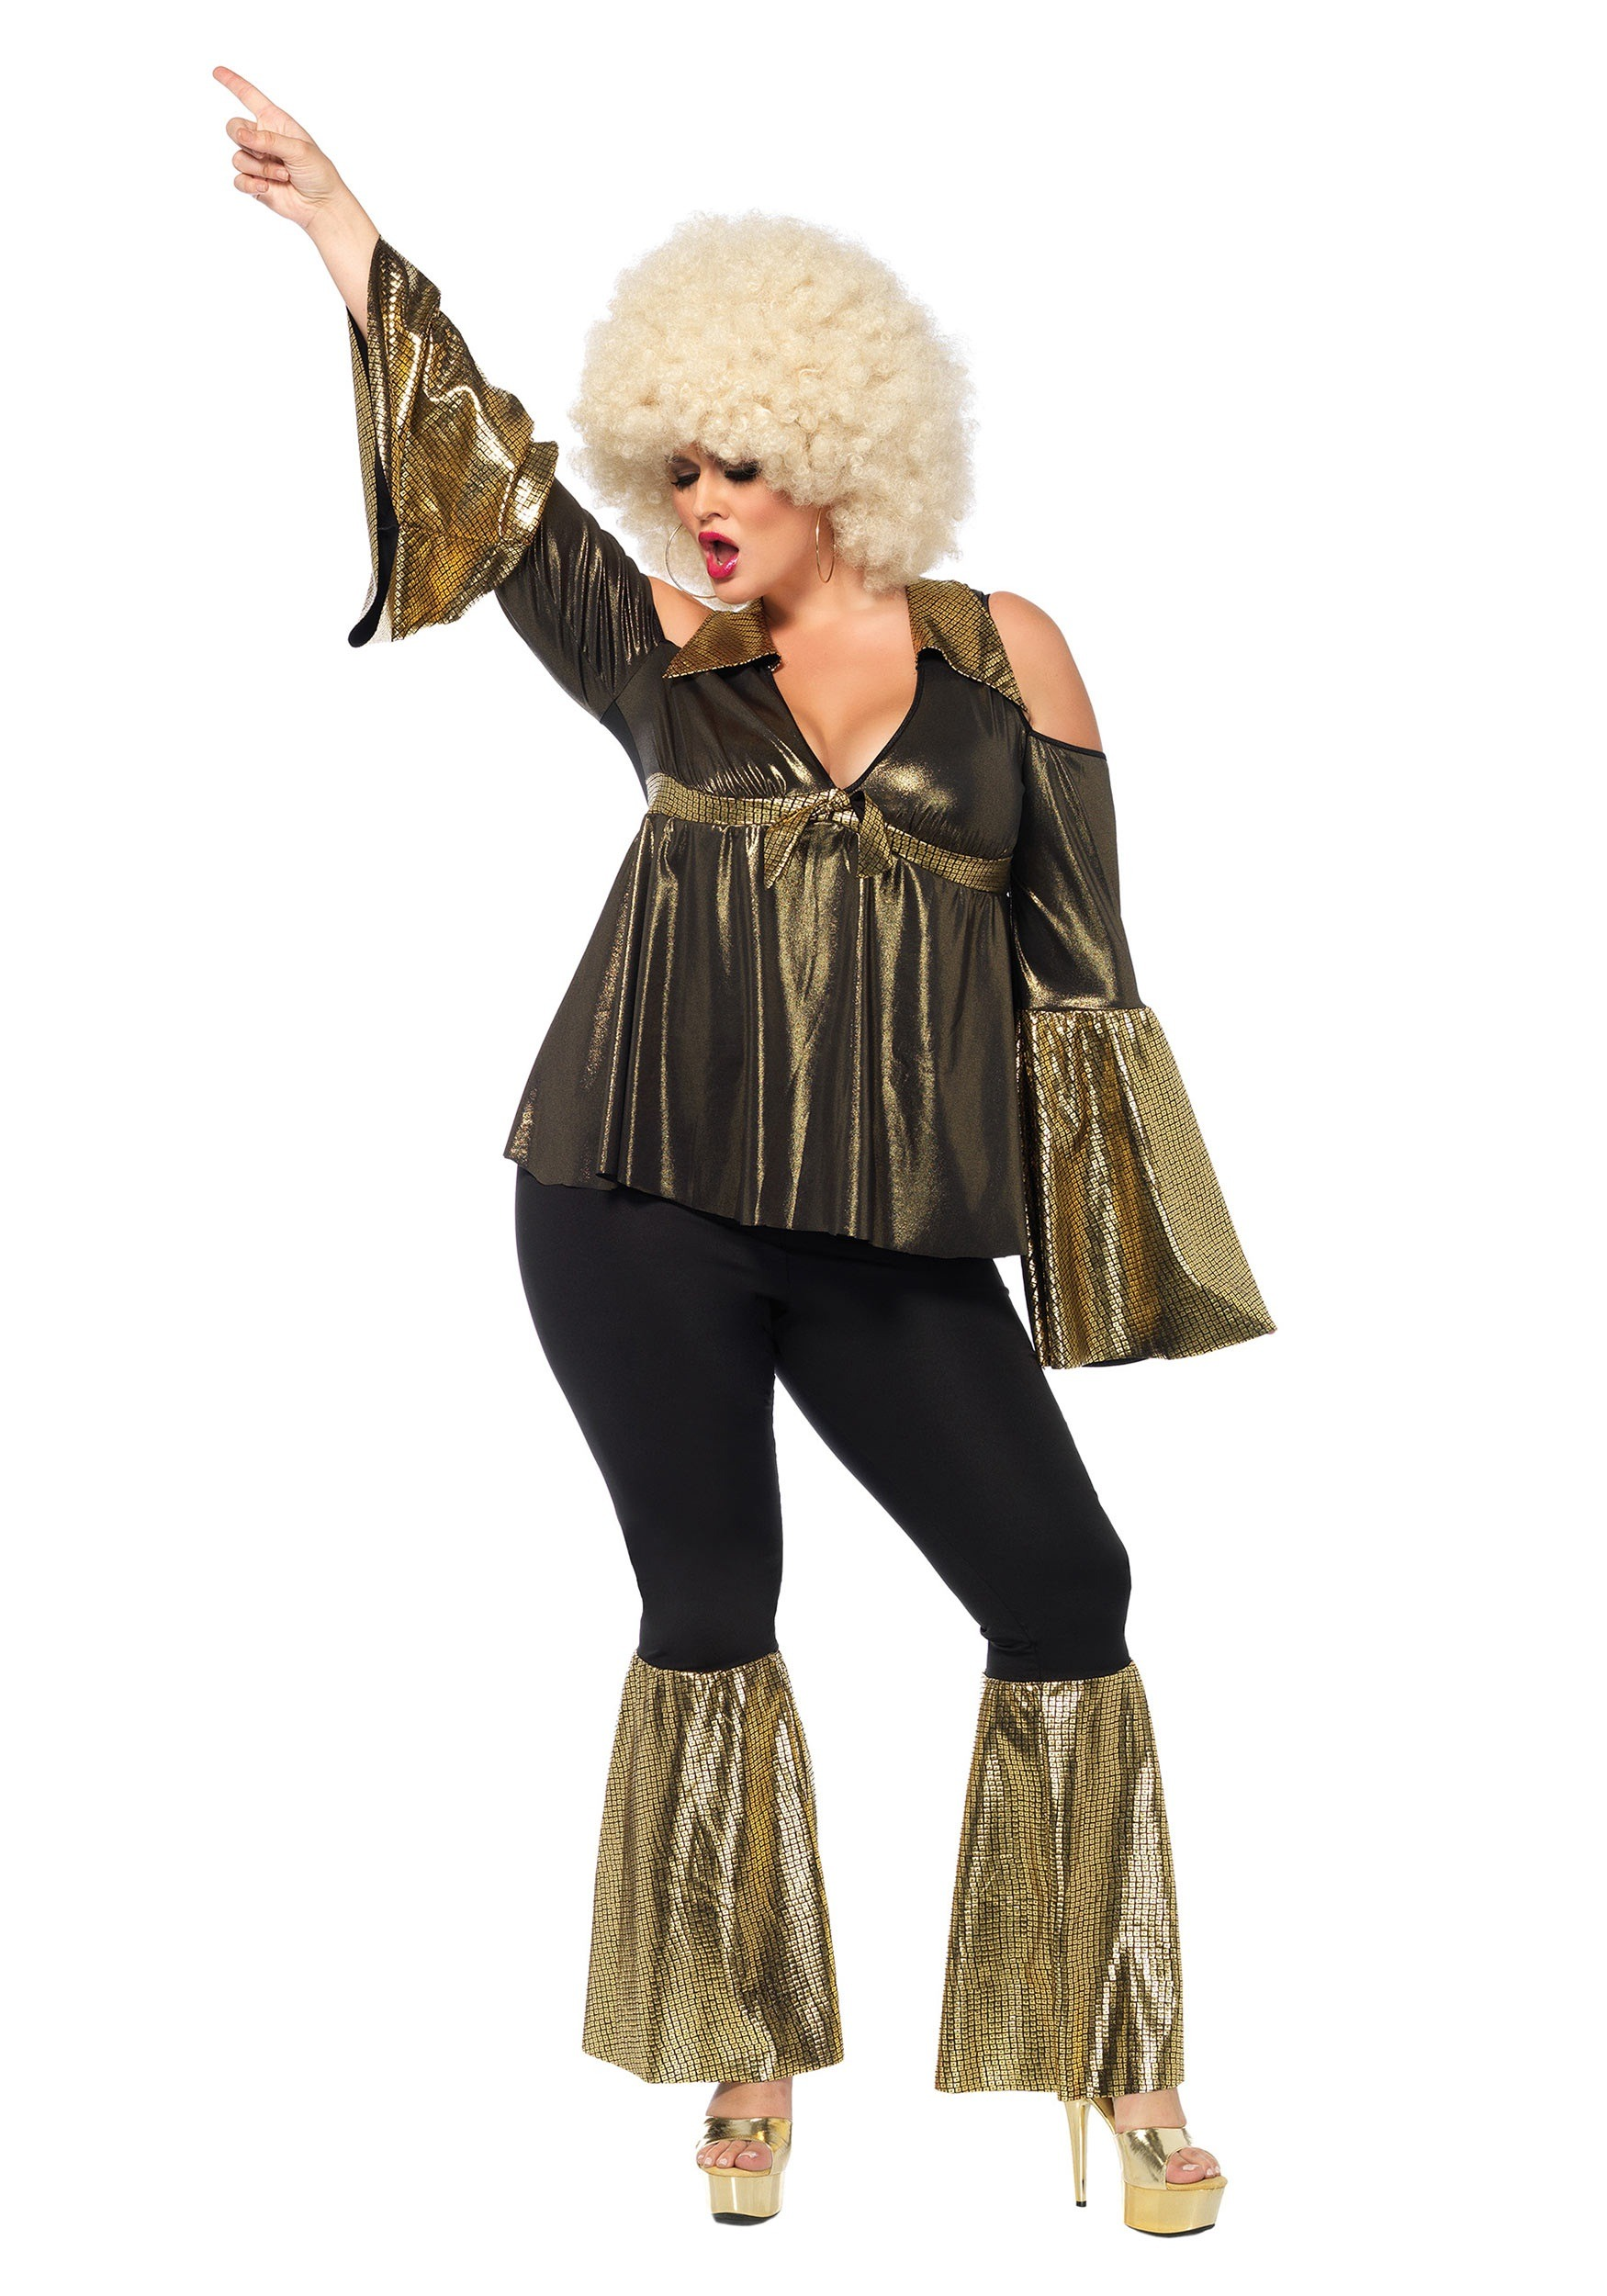 514d9096a76 70s Costumes   Outfits For Halloween - HalloweenCostumes.com ...